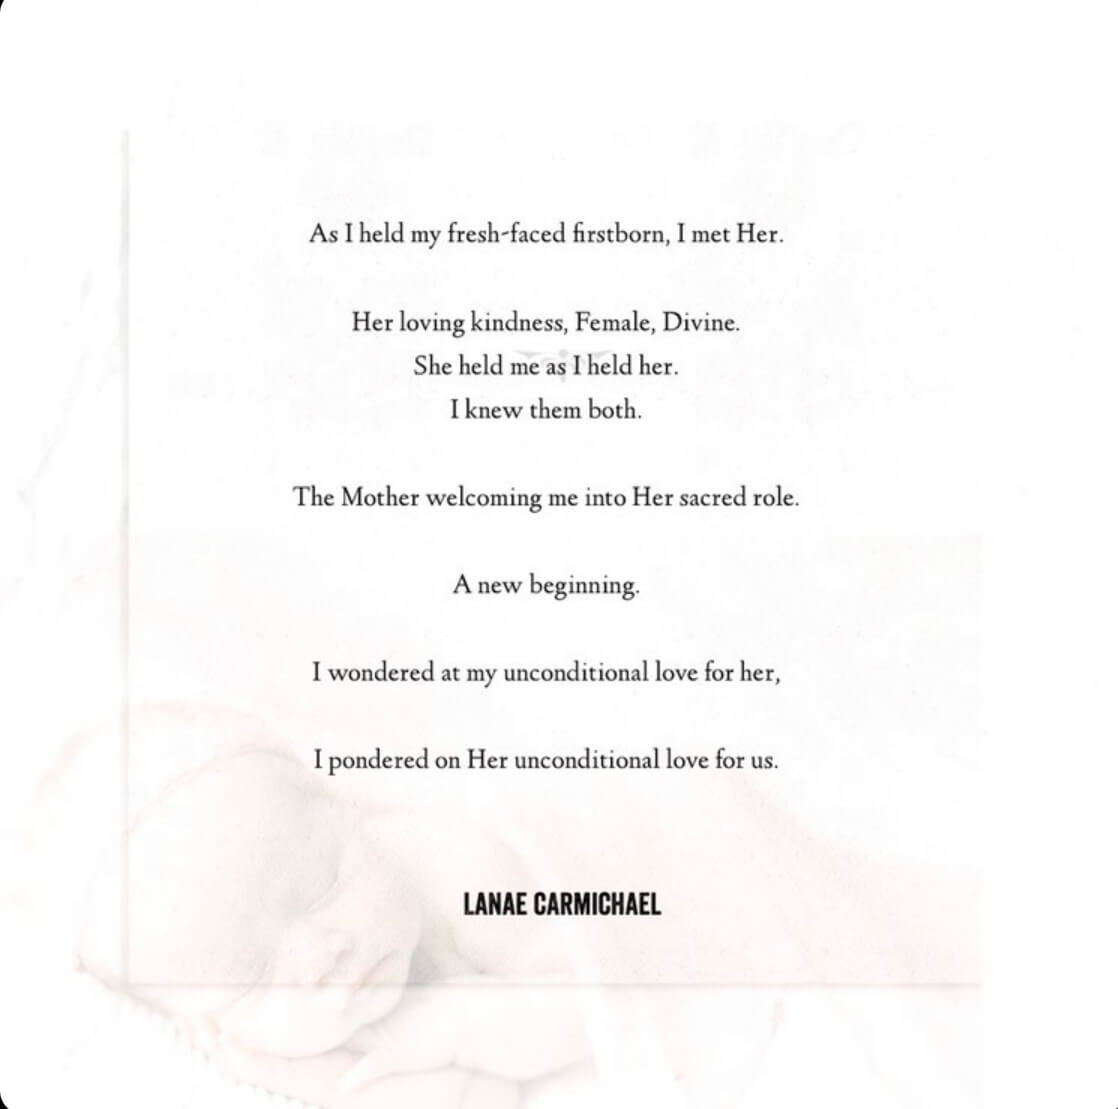 Image of the poem text overlayed on a photo of a newborn